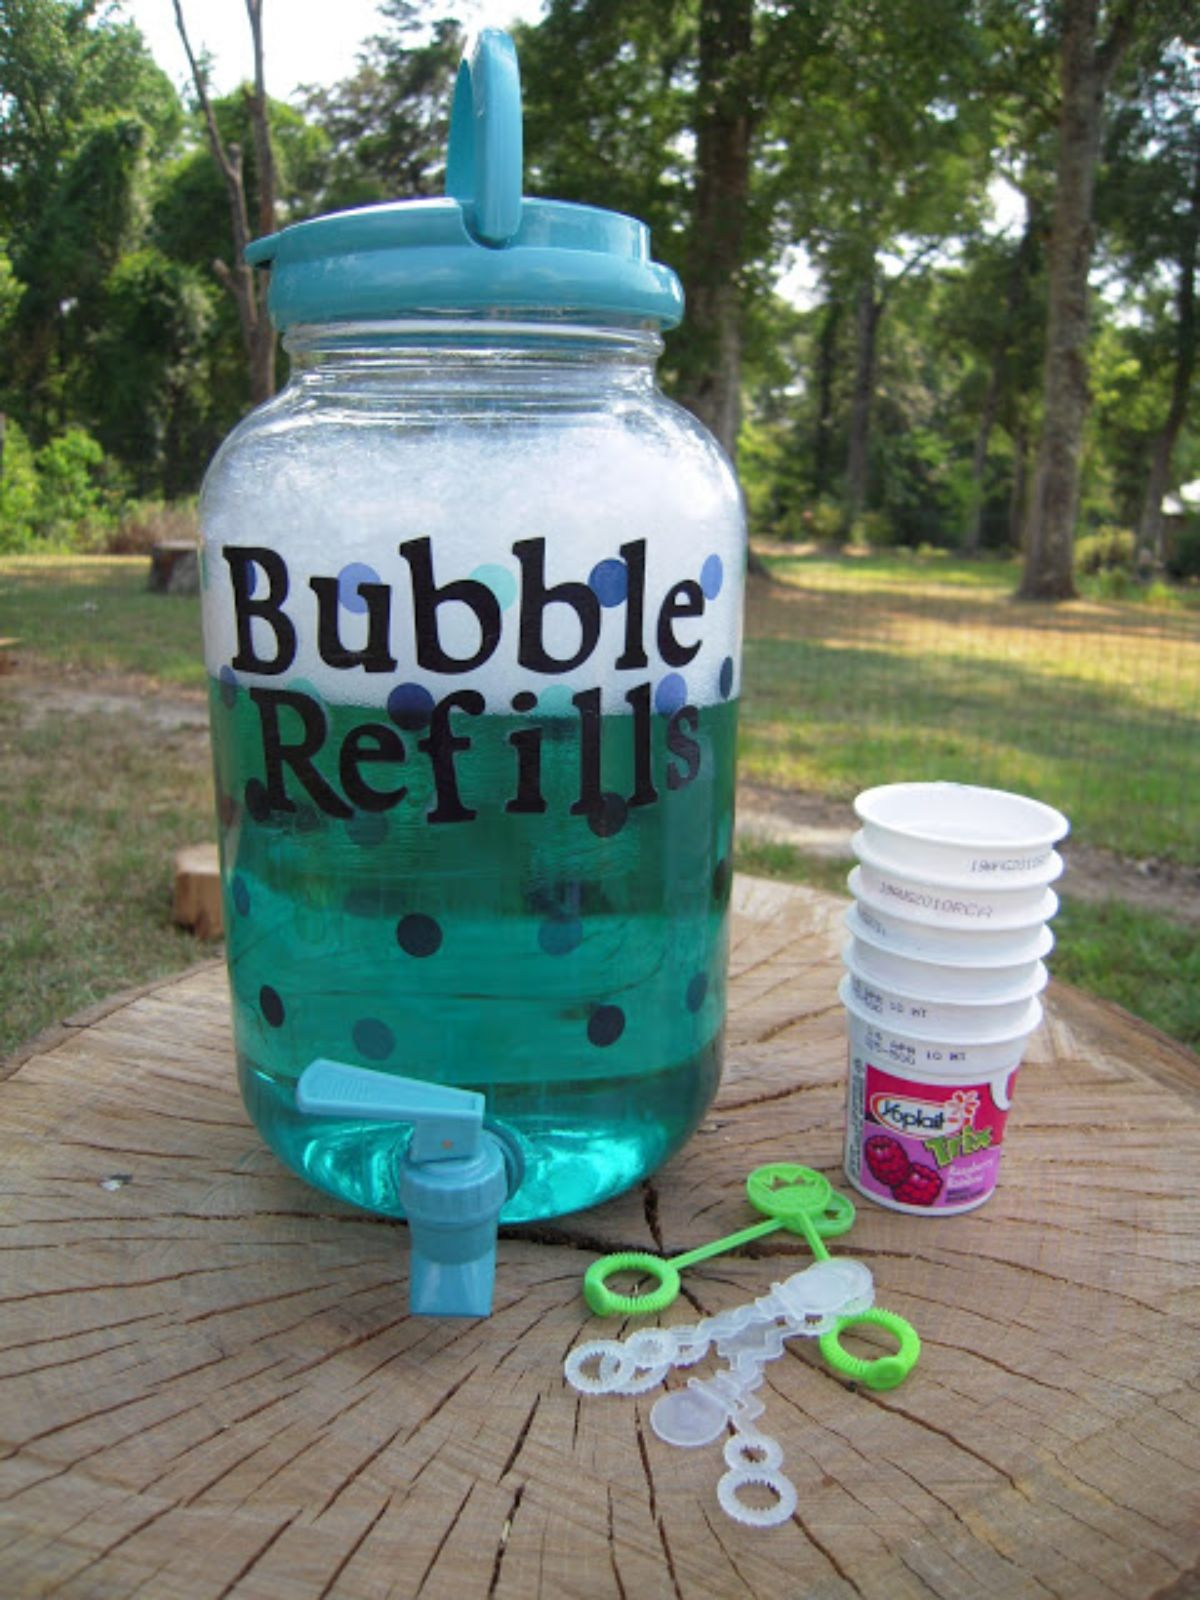 On a log top is a kilner jar full of bubble mixture, bubble wands and paper cups